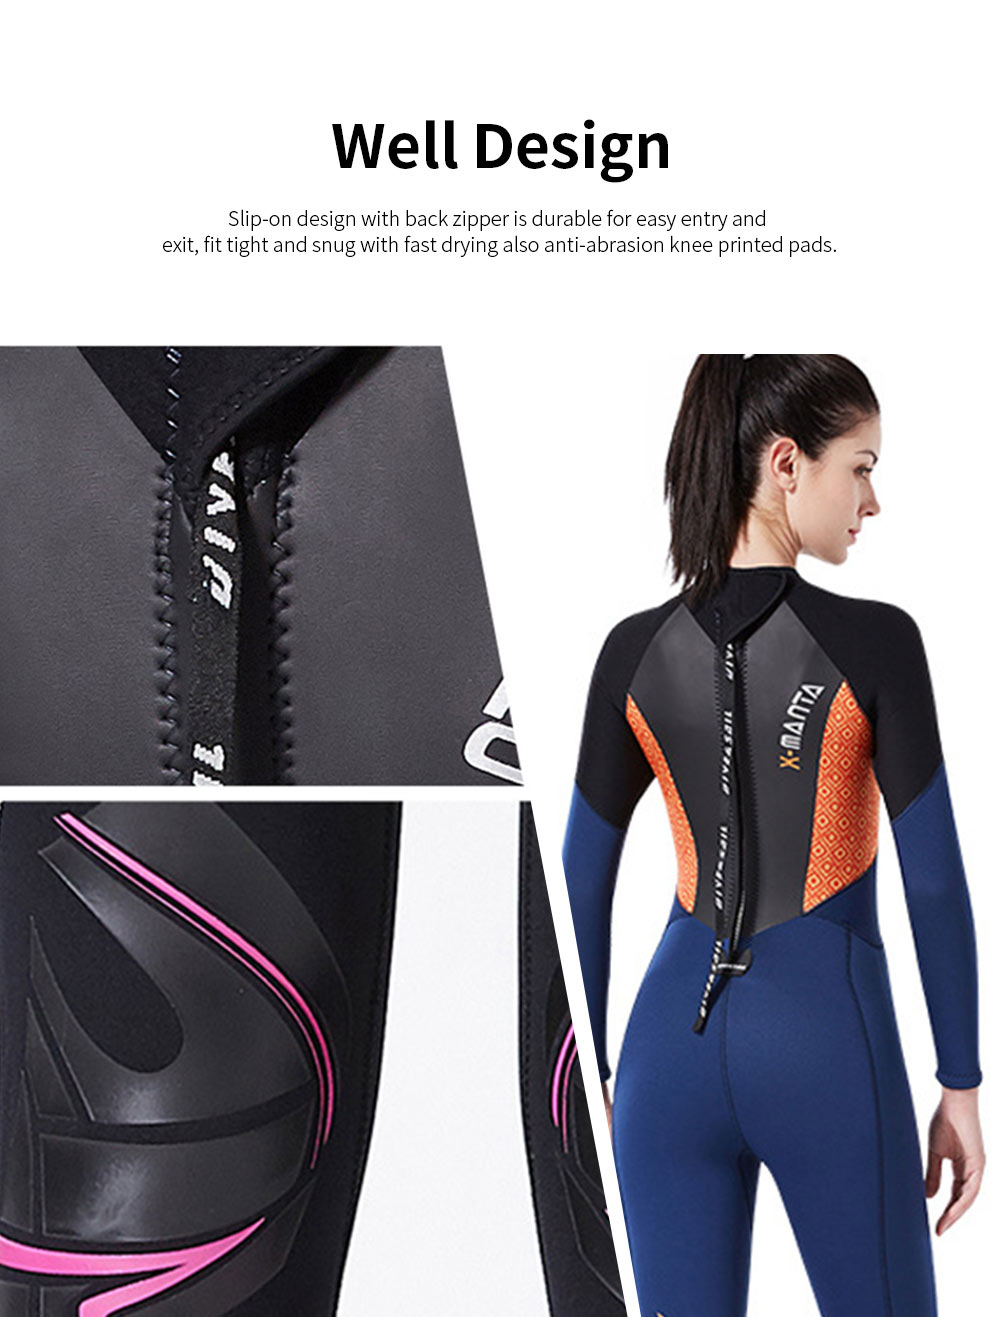 Women Full Body Wetsuits Premium 3mm Neoprene UV Protection Back Zip Diving Suits for Snorkeling Surfing Swimming Suit Jumpsuit 2